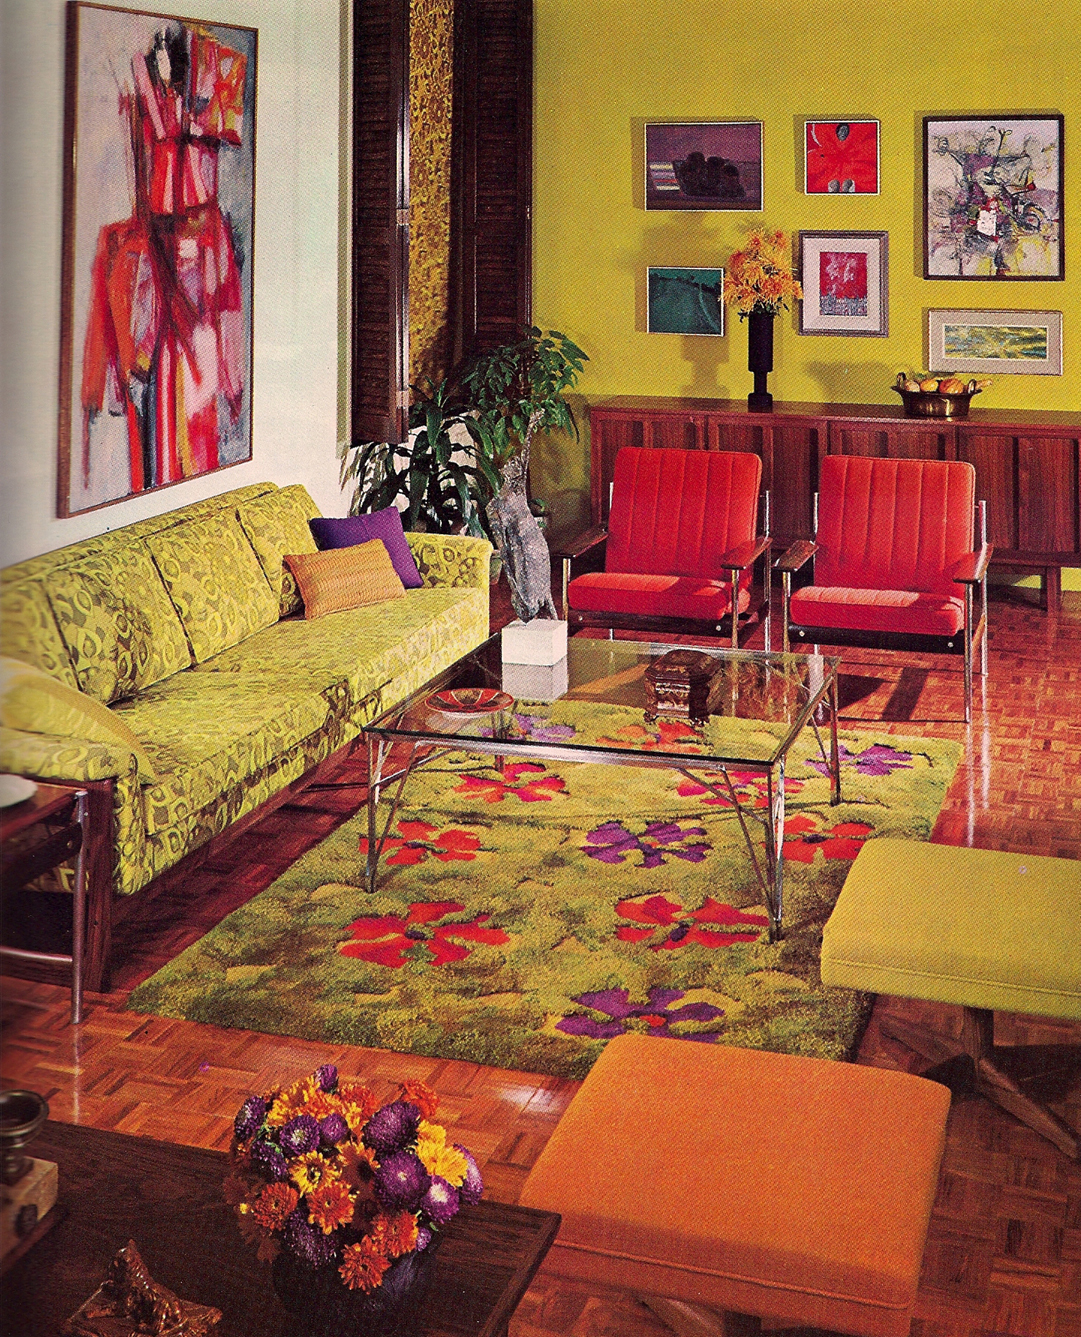 Vintage interior apartments i like blog for Retro dekoration